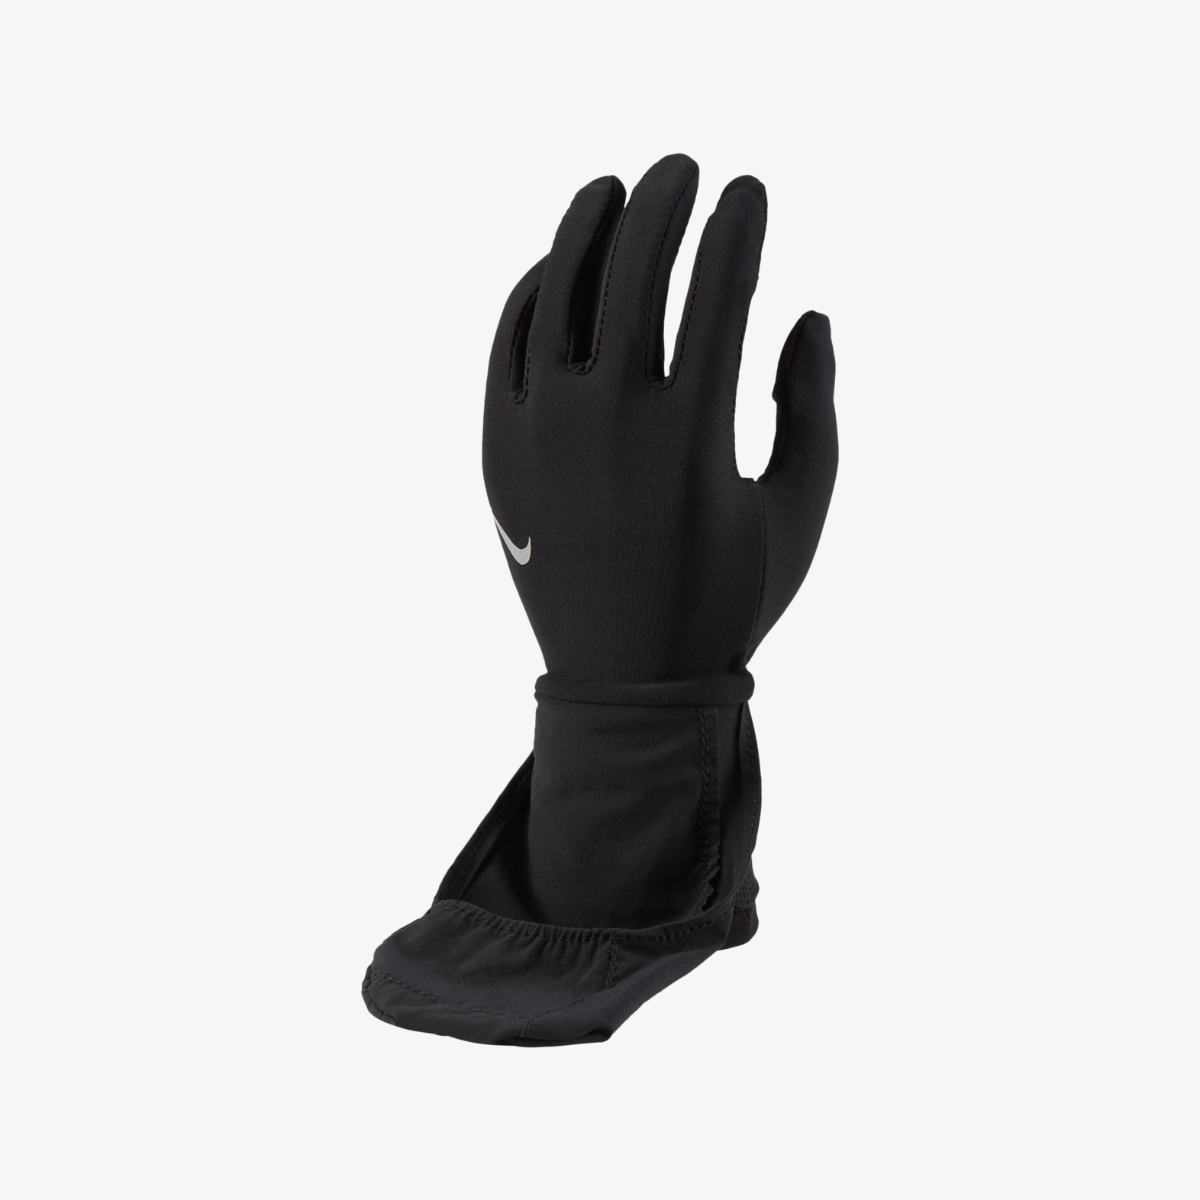 Перчатки для бега NIKE WOMENS TRANSFORM RUNNING GLOVES BLACK/BLACK/SILVER L